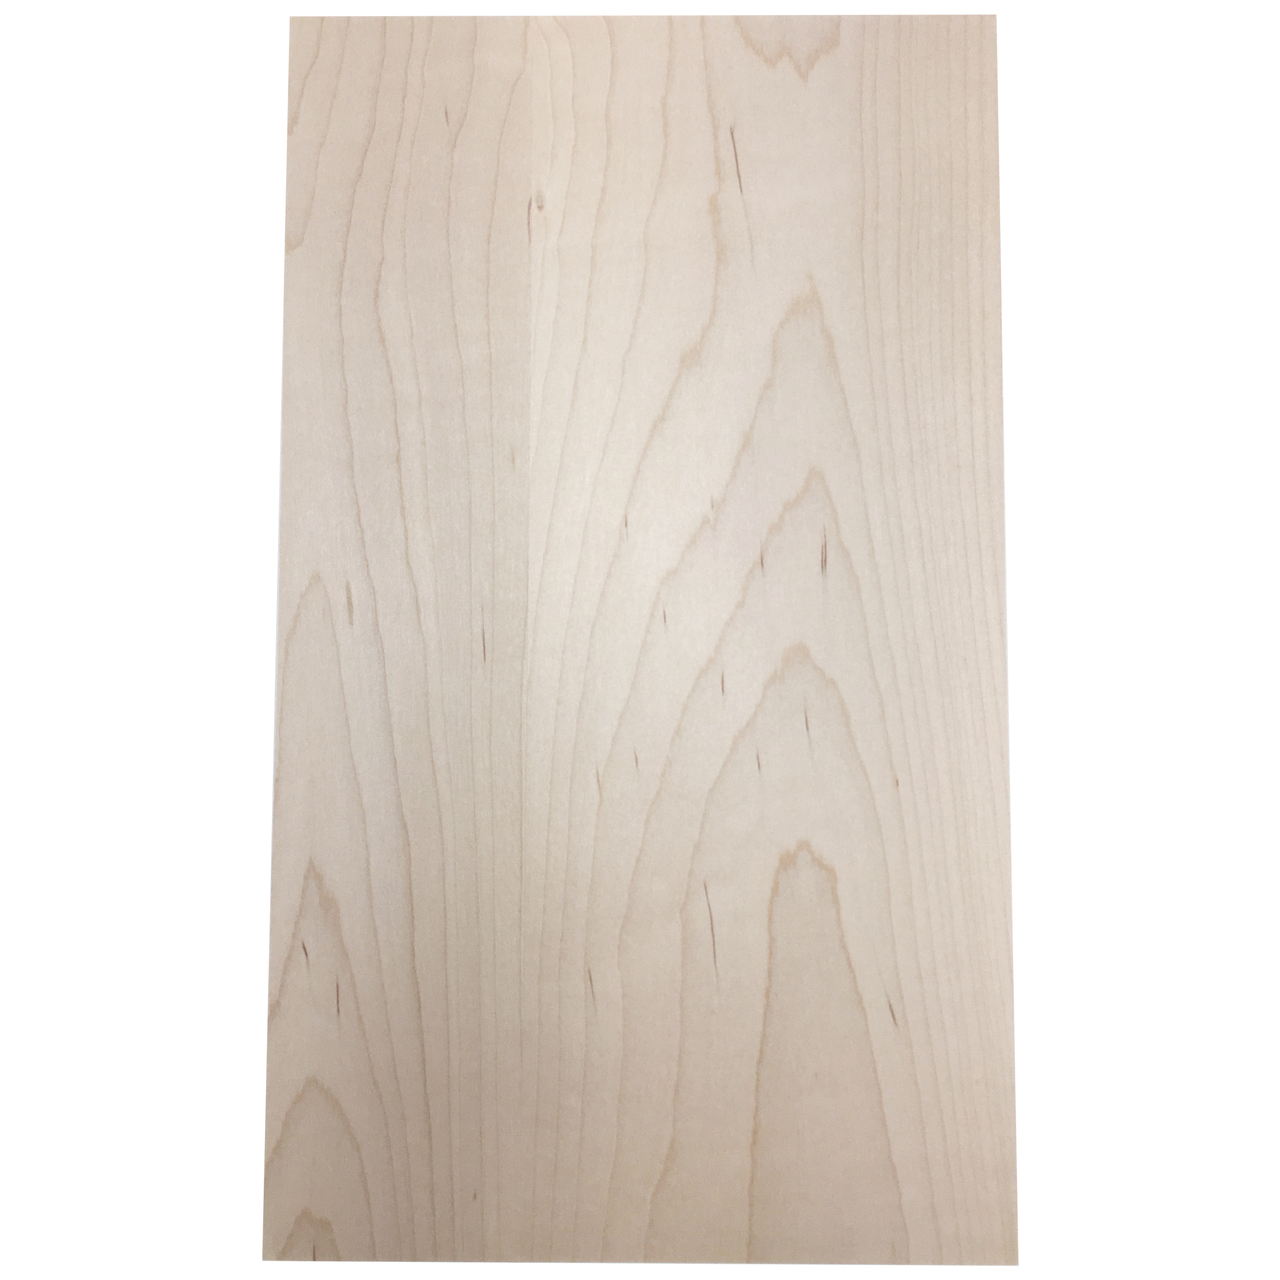 Solid Slab Door   Stain Grade Maple. Loading Zoom. Solid Slab Door   Stain  Grade Maple